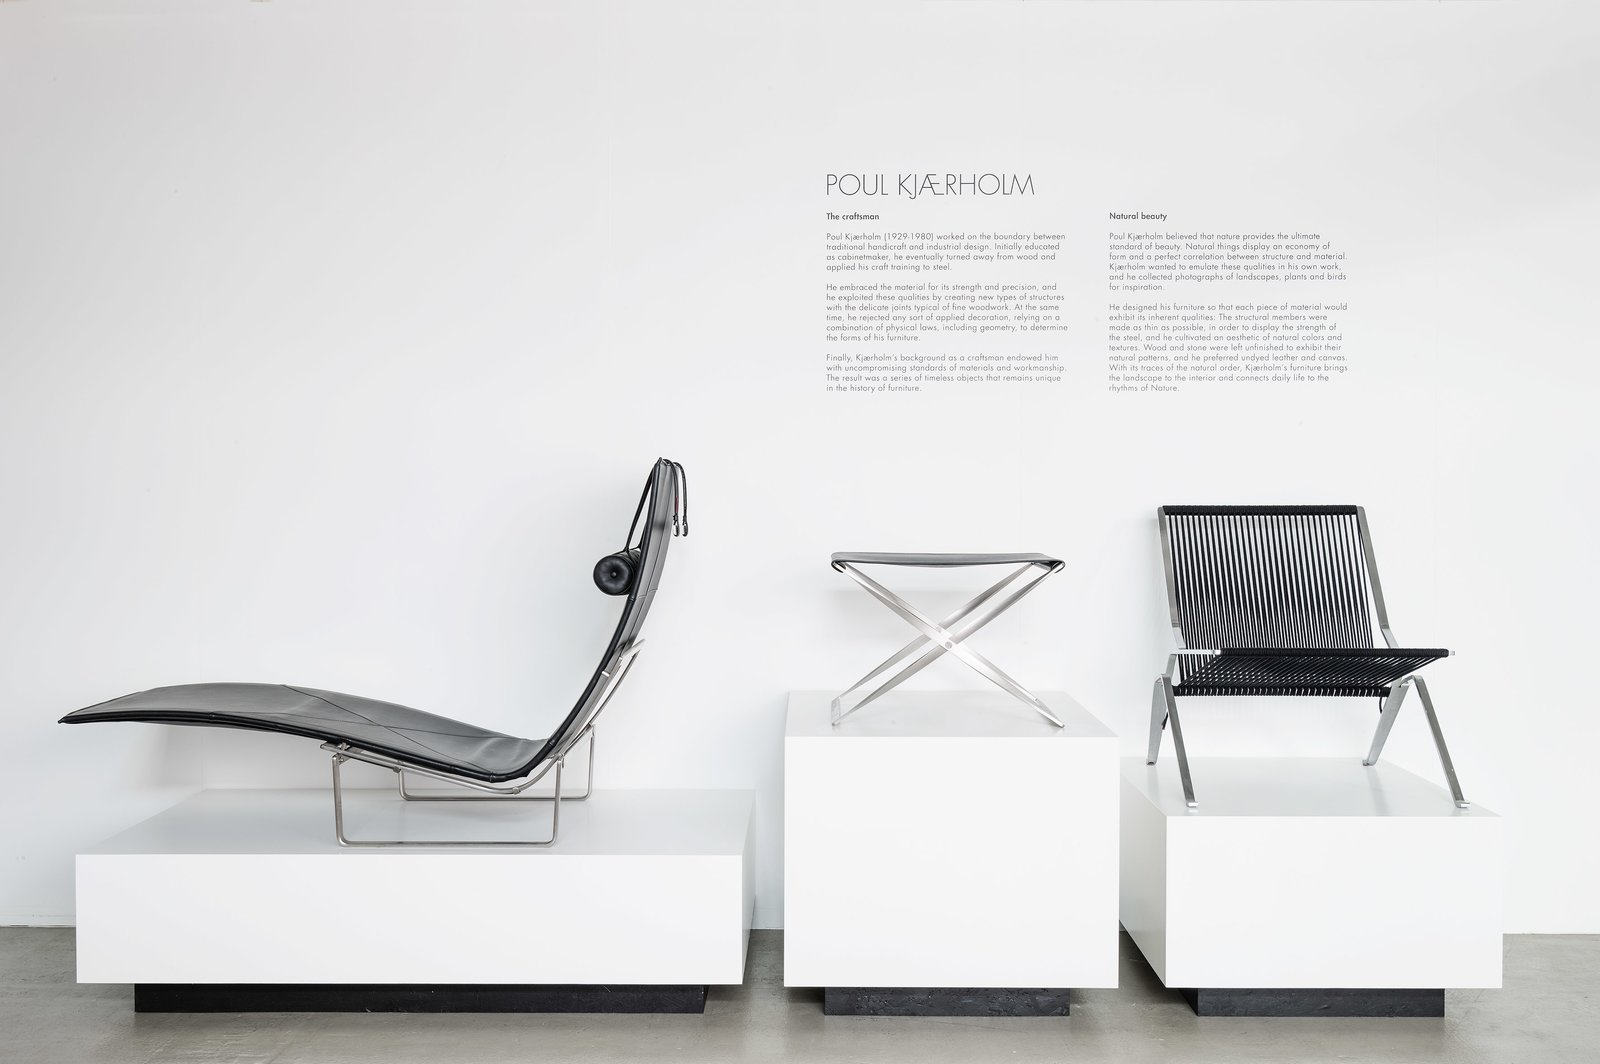 Exhibited between the PK24 and the PK25, the PK91 is Kjærholm's homage to the Danish designer Kaare Klint. As an influential professor at the Royal Academy of Fine Arts, Klint produced a number of important designs, most notably the Safari Chair in 1933. A stool by the professor made from the same material, canvas and wood, is said to have inspired Kjærholm to make his own folding stool in his preferred industrial materials.  Photo 10 of 11 in 10 Things You Didn't Know About Poul Kjærholm